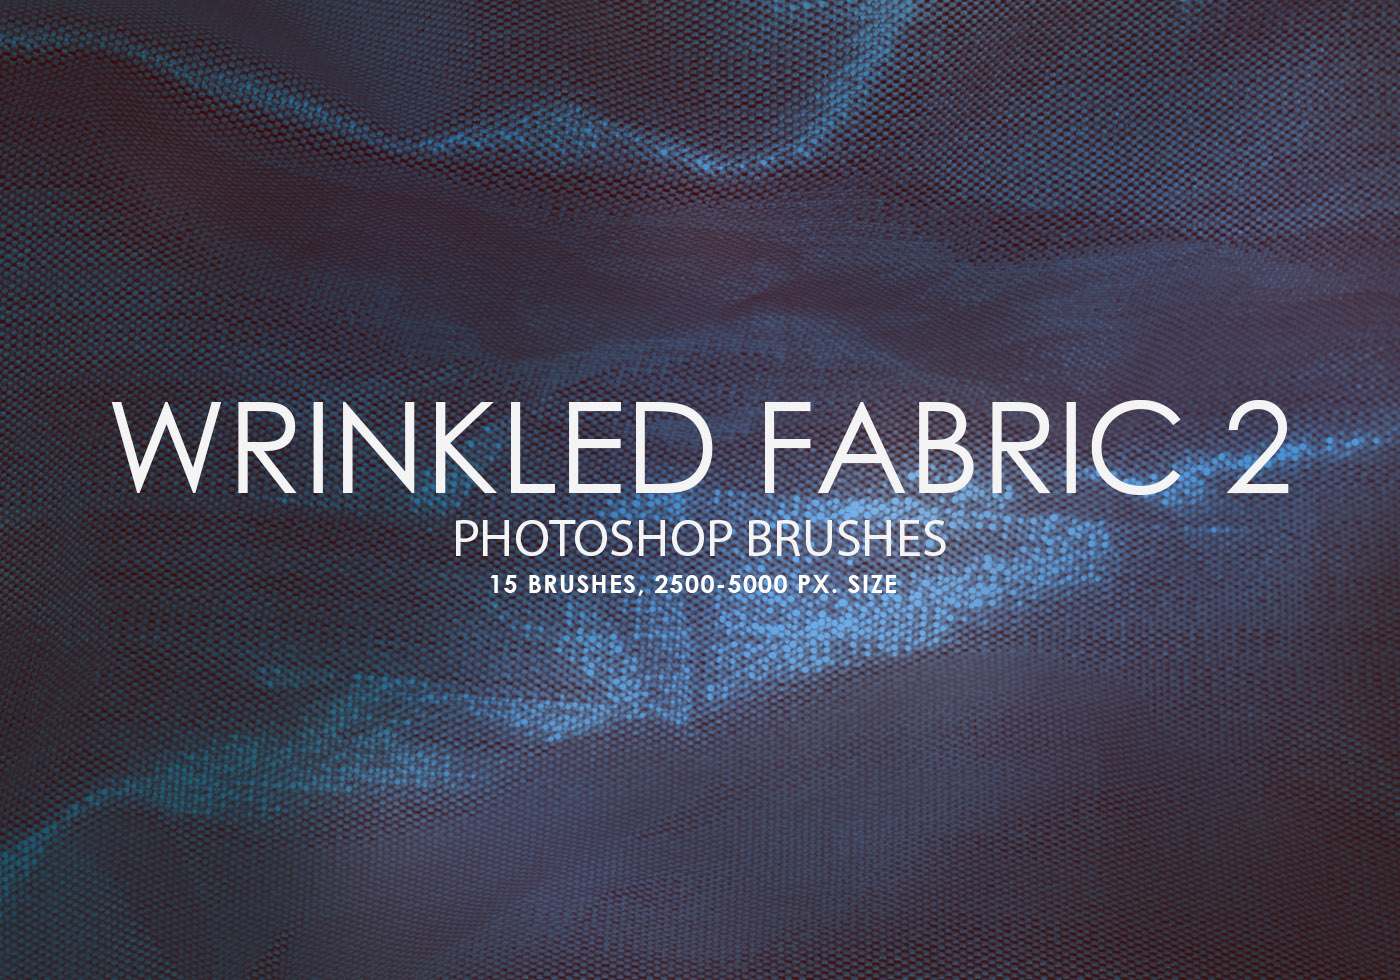 free wrinkled fabric photoshop brushes 2